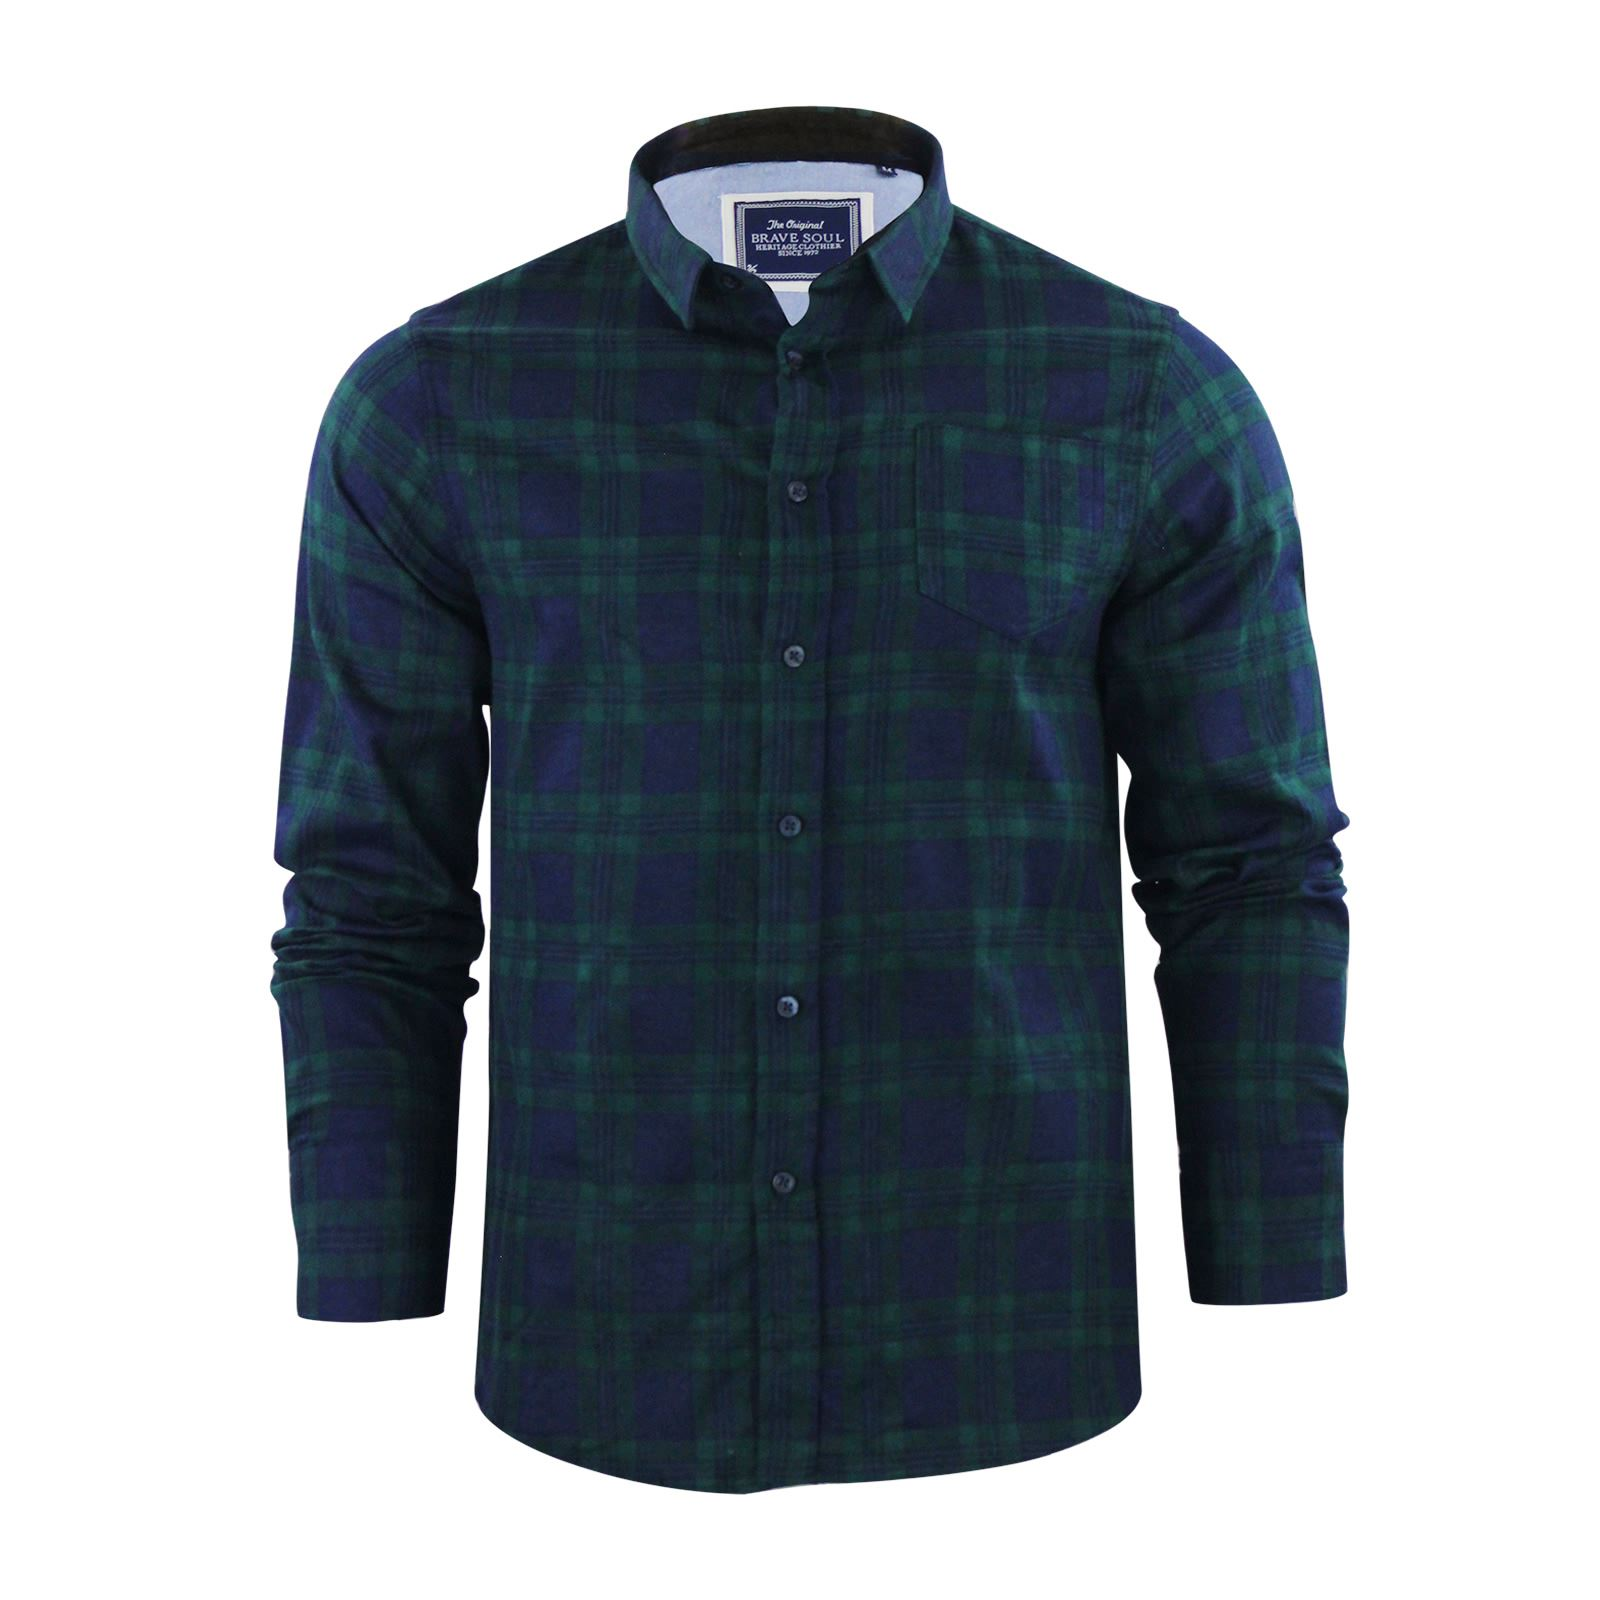 Brave-Soul-Mens-Check-Shirt-Flannel-Brushed-Cotton-Long-Sleeve-Casual-Top thumbnail 73